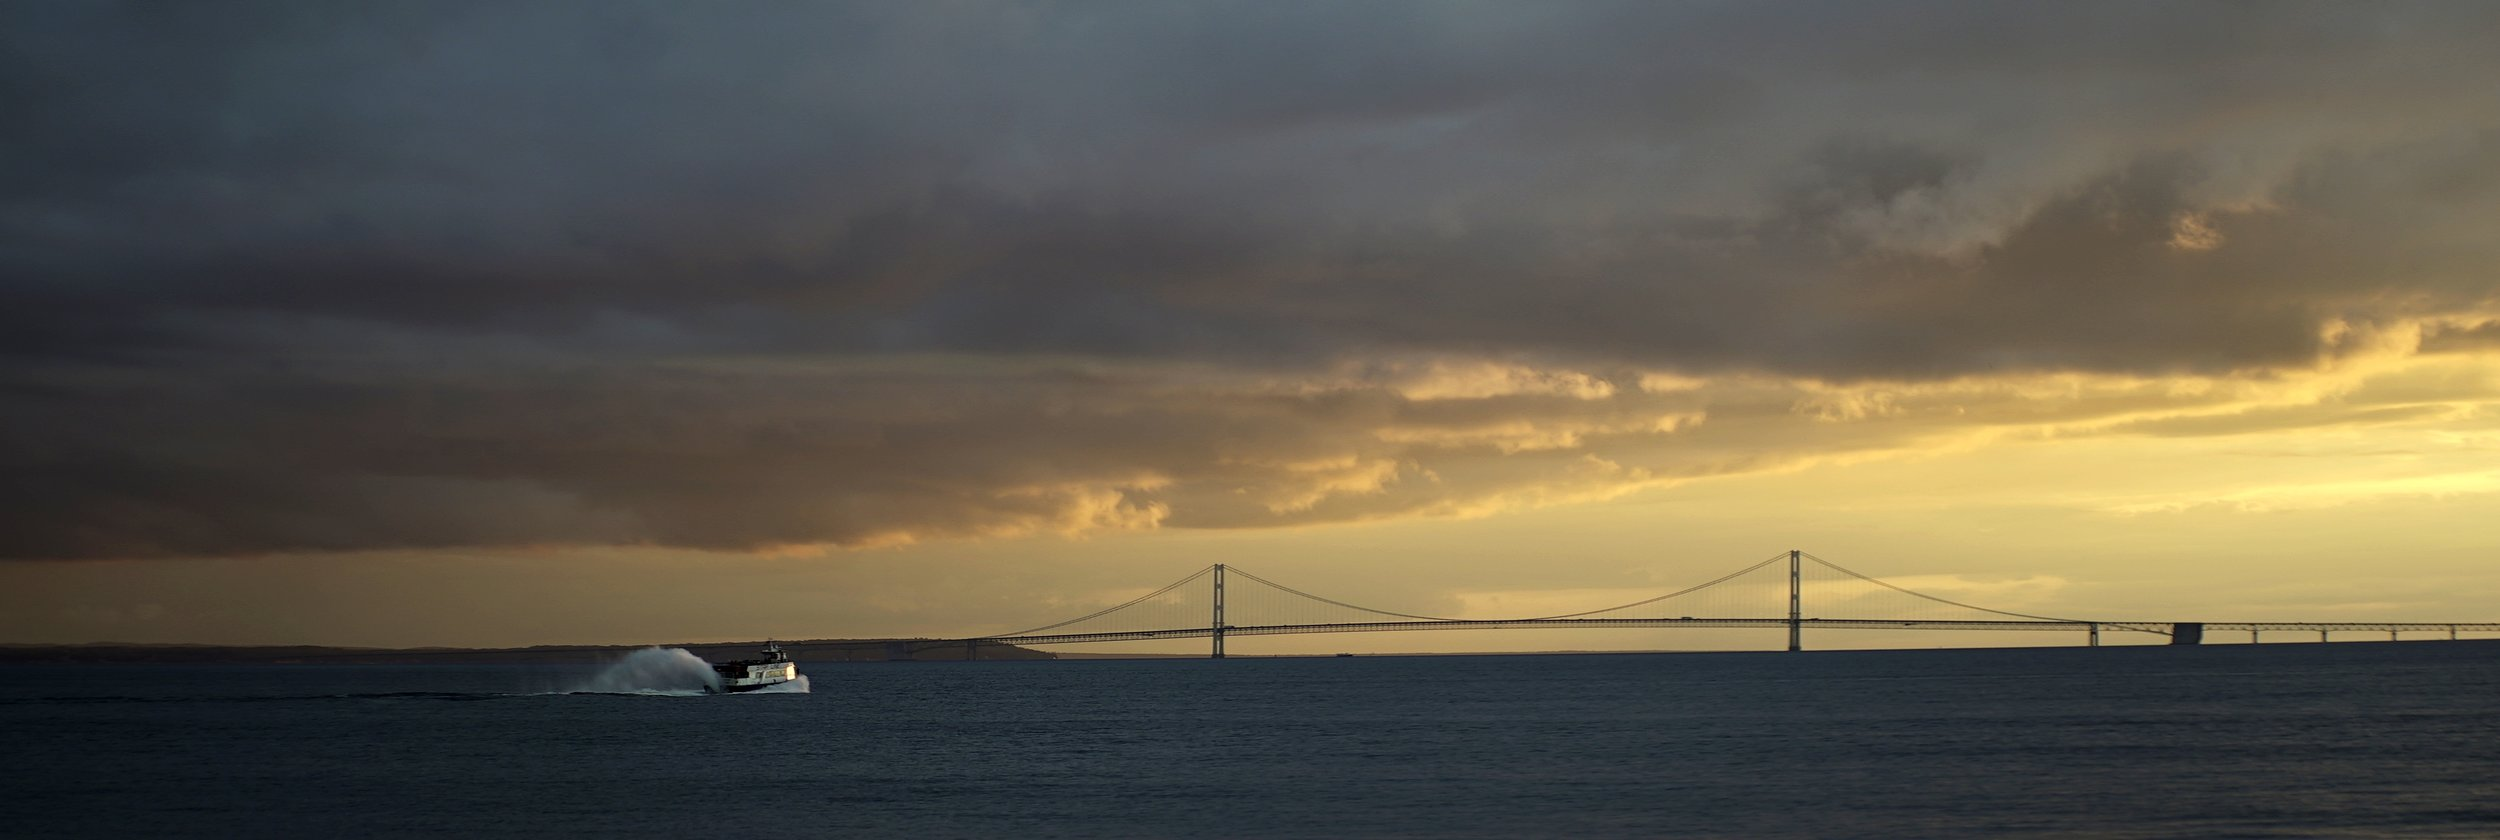 Lomo 100mm anamorphic lens | Mackinac Bridge, MI. Photo by: Keith Nickoson